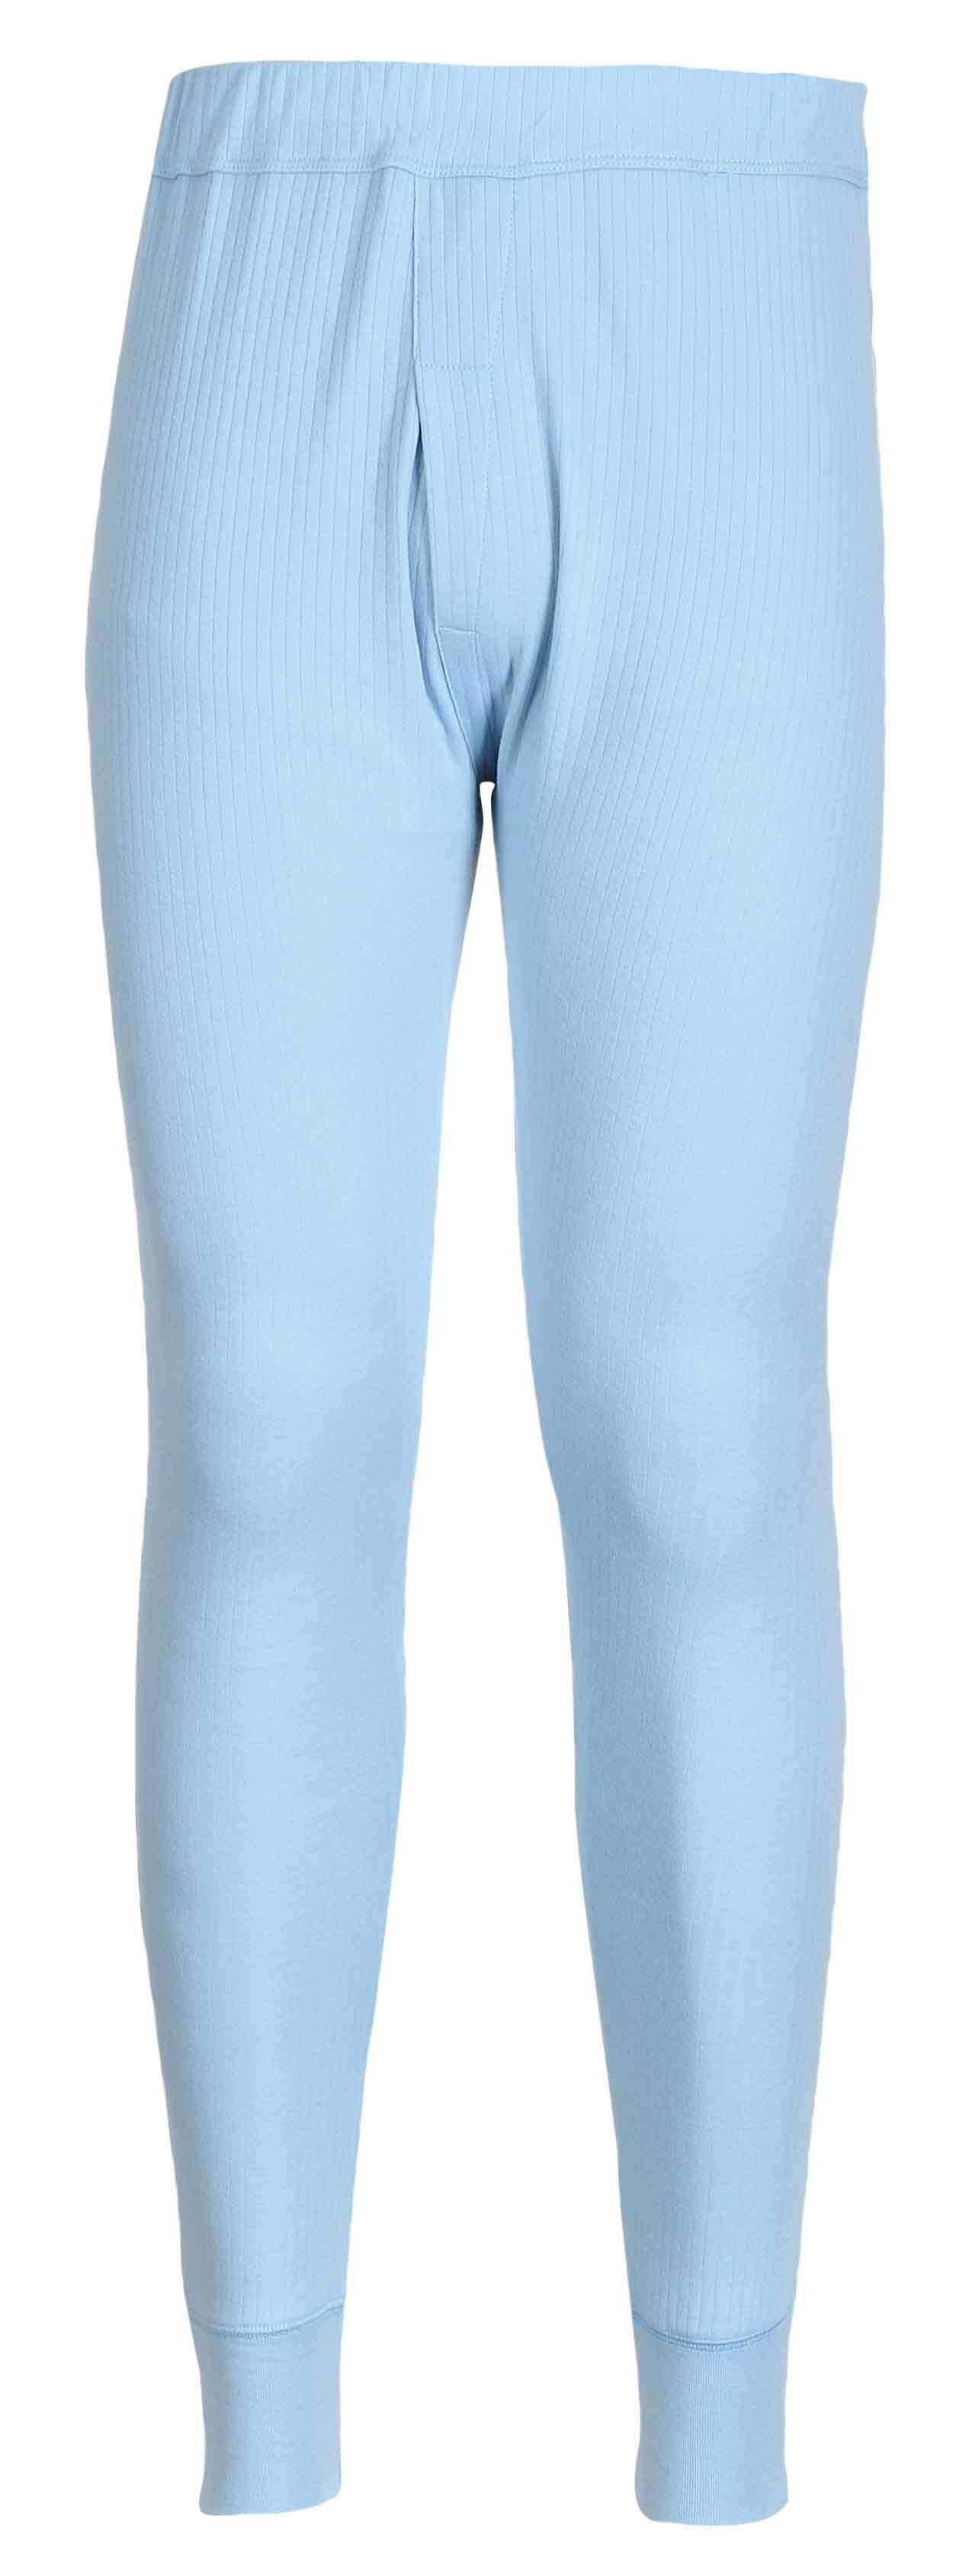 Portwest B121 Thermal Trouser